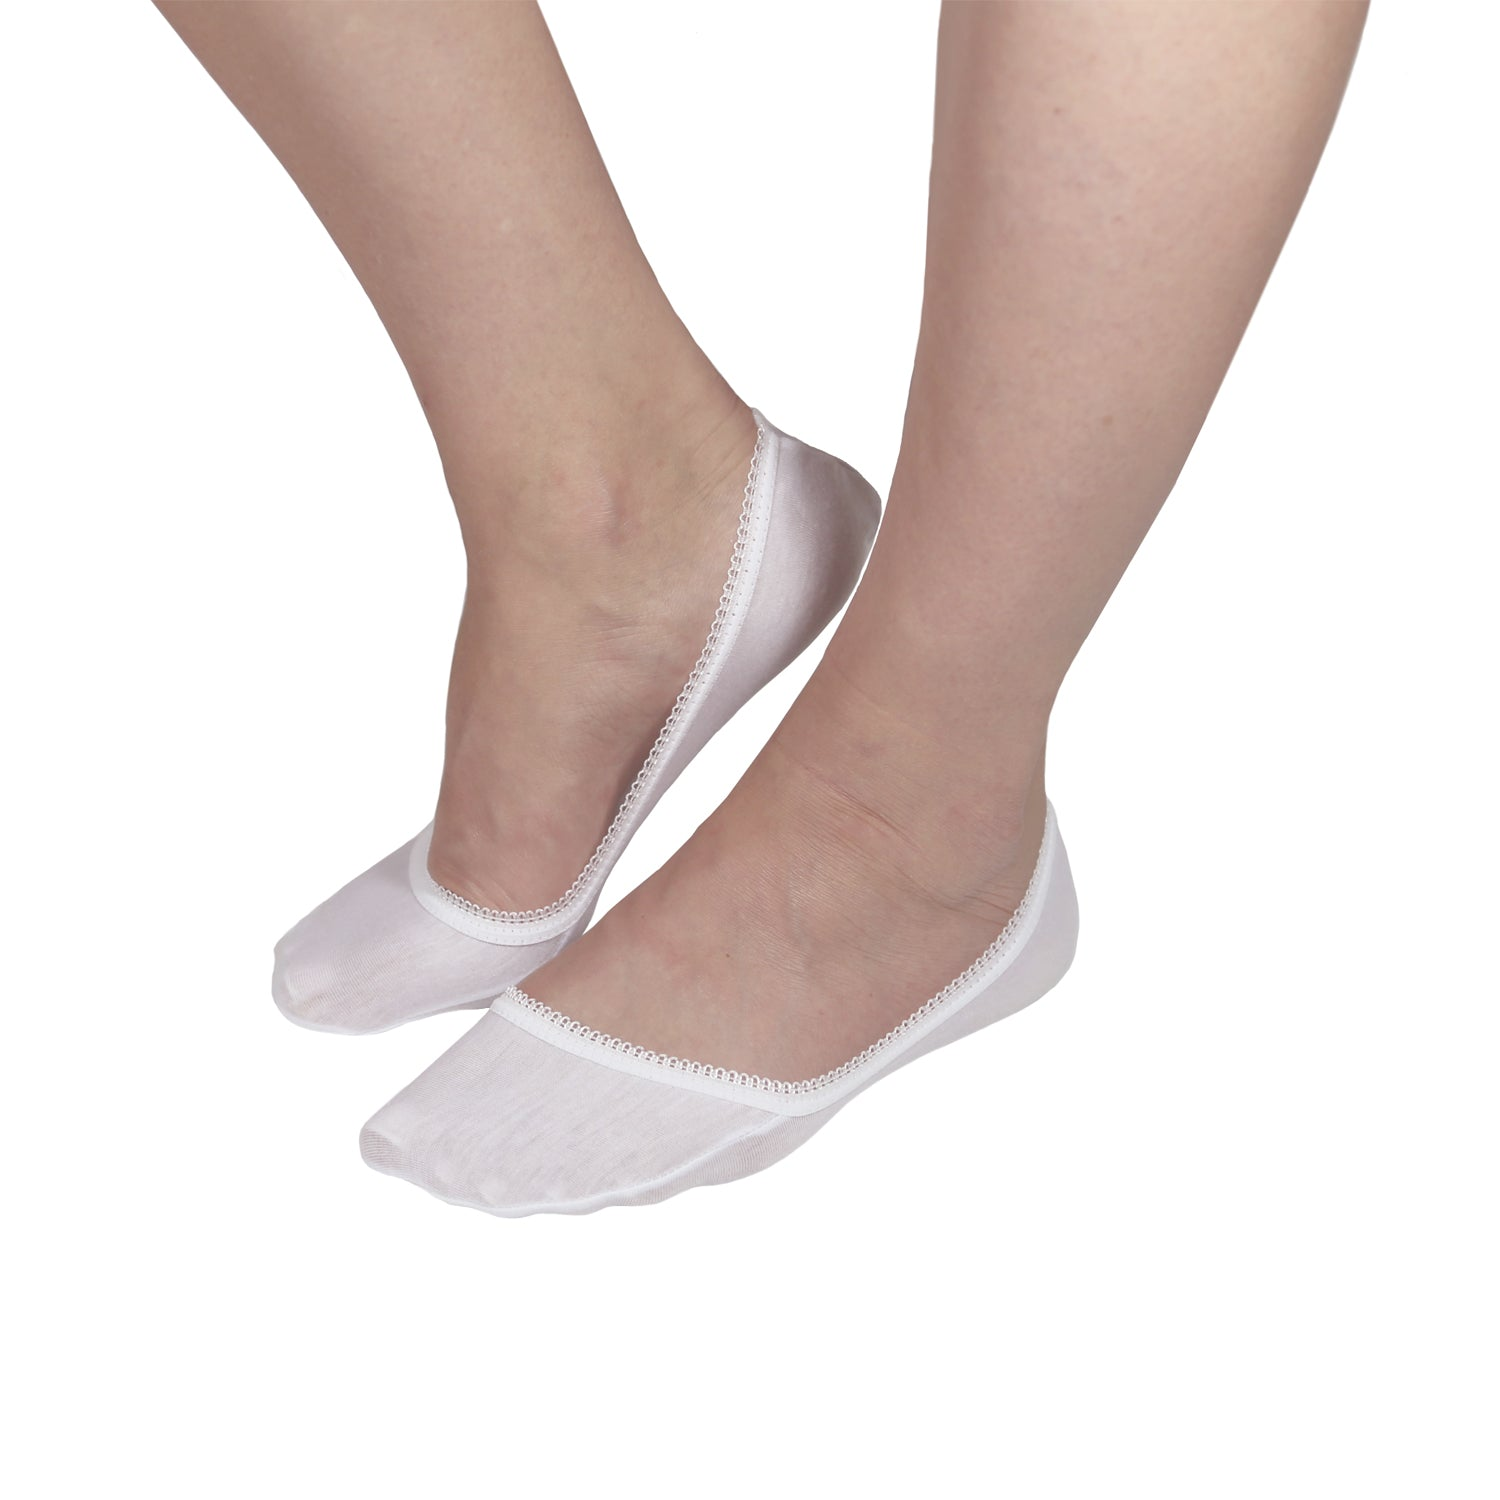 Women's Extra Low Cut Liner No Show Socks, Size 9-11